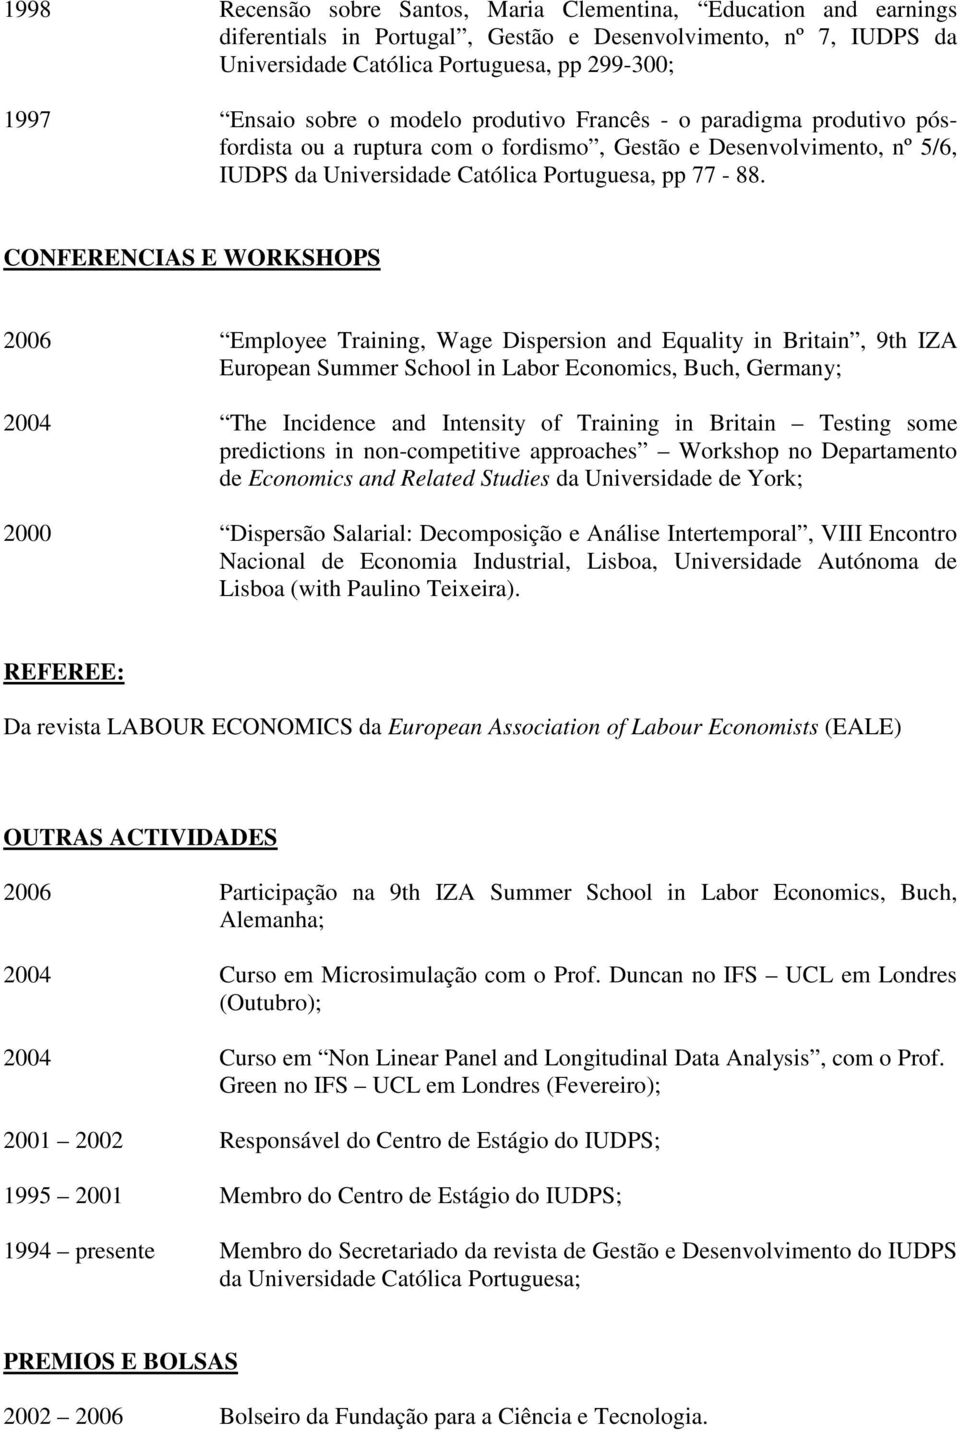 CONFERENCIAS E WORKSHOPS 2006 Employee Training, Wage Dispersion and Equality in Britain, 9th IZA European Summer School in Labor Economics, Buch, Germany; 2004 The Incidence and Intensity of